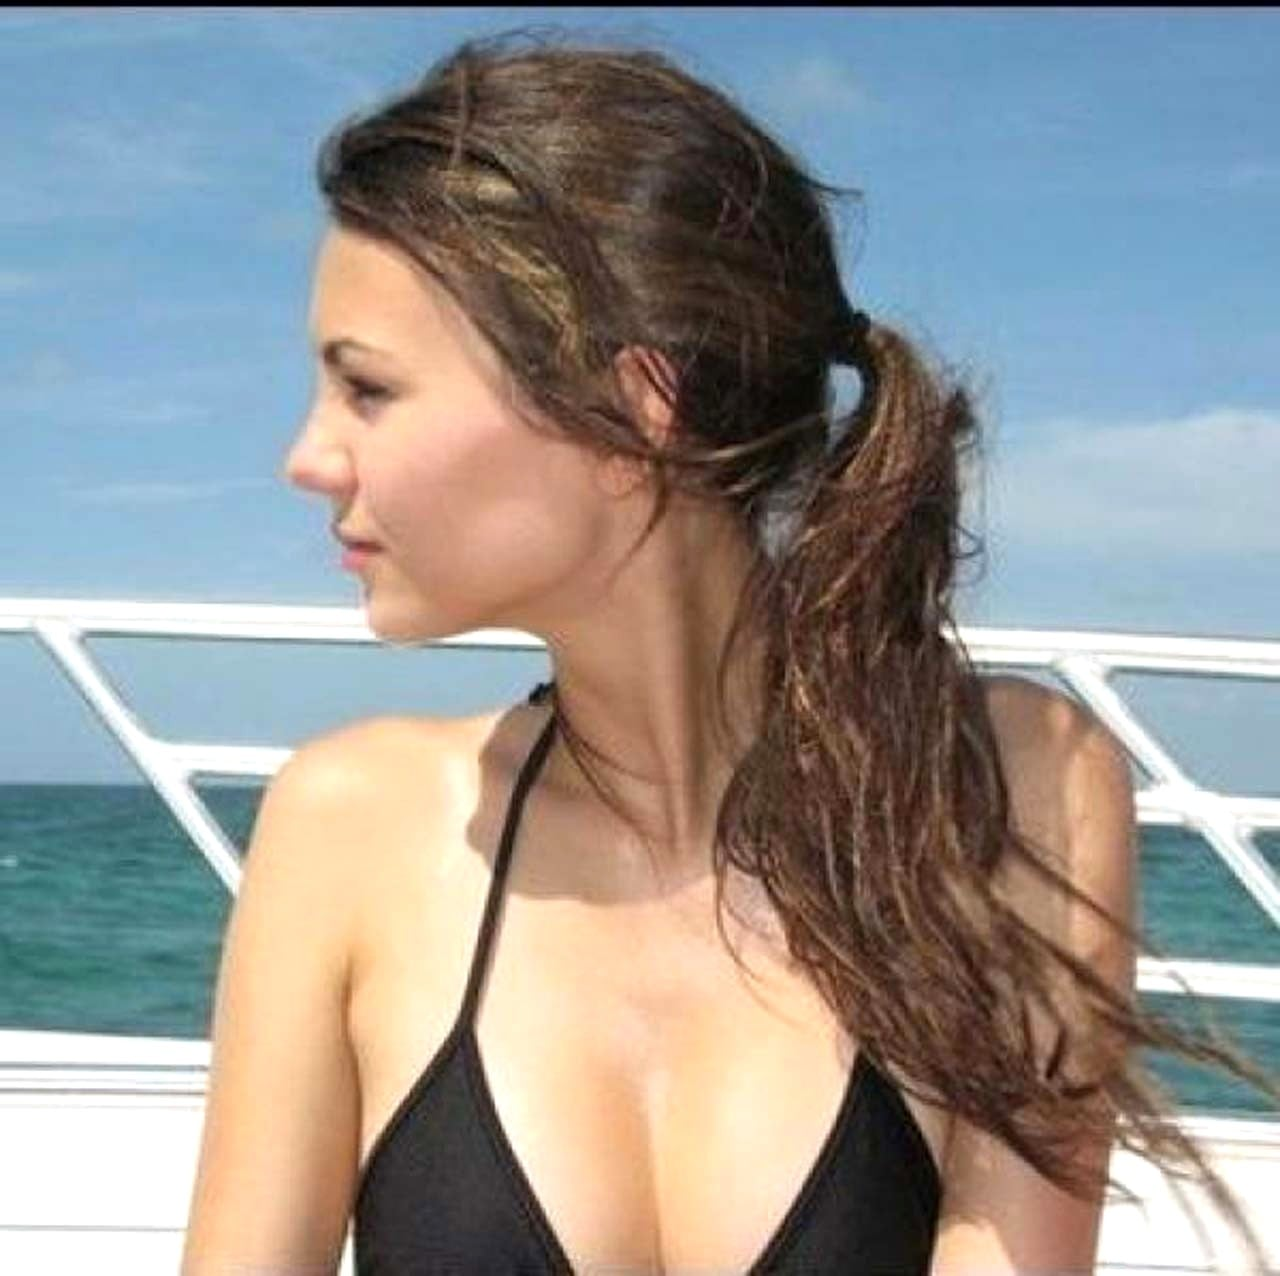 Victoria Justice on Boat